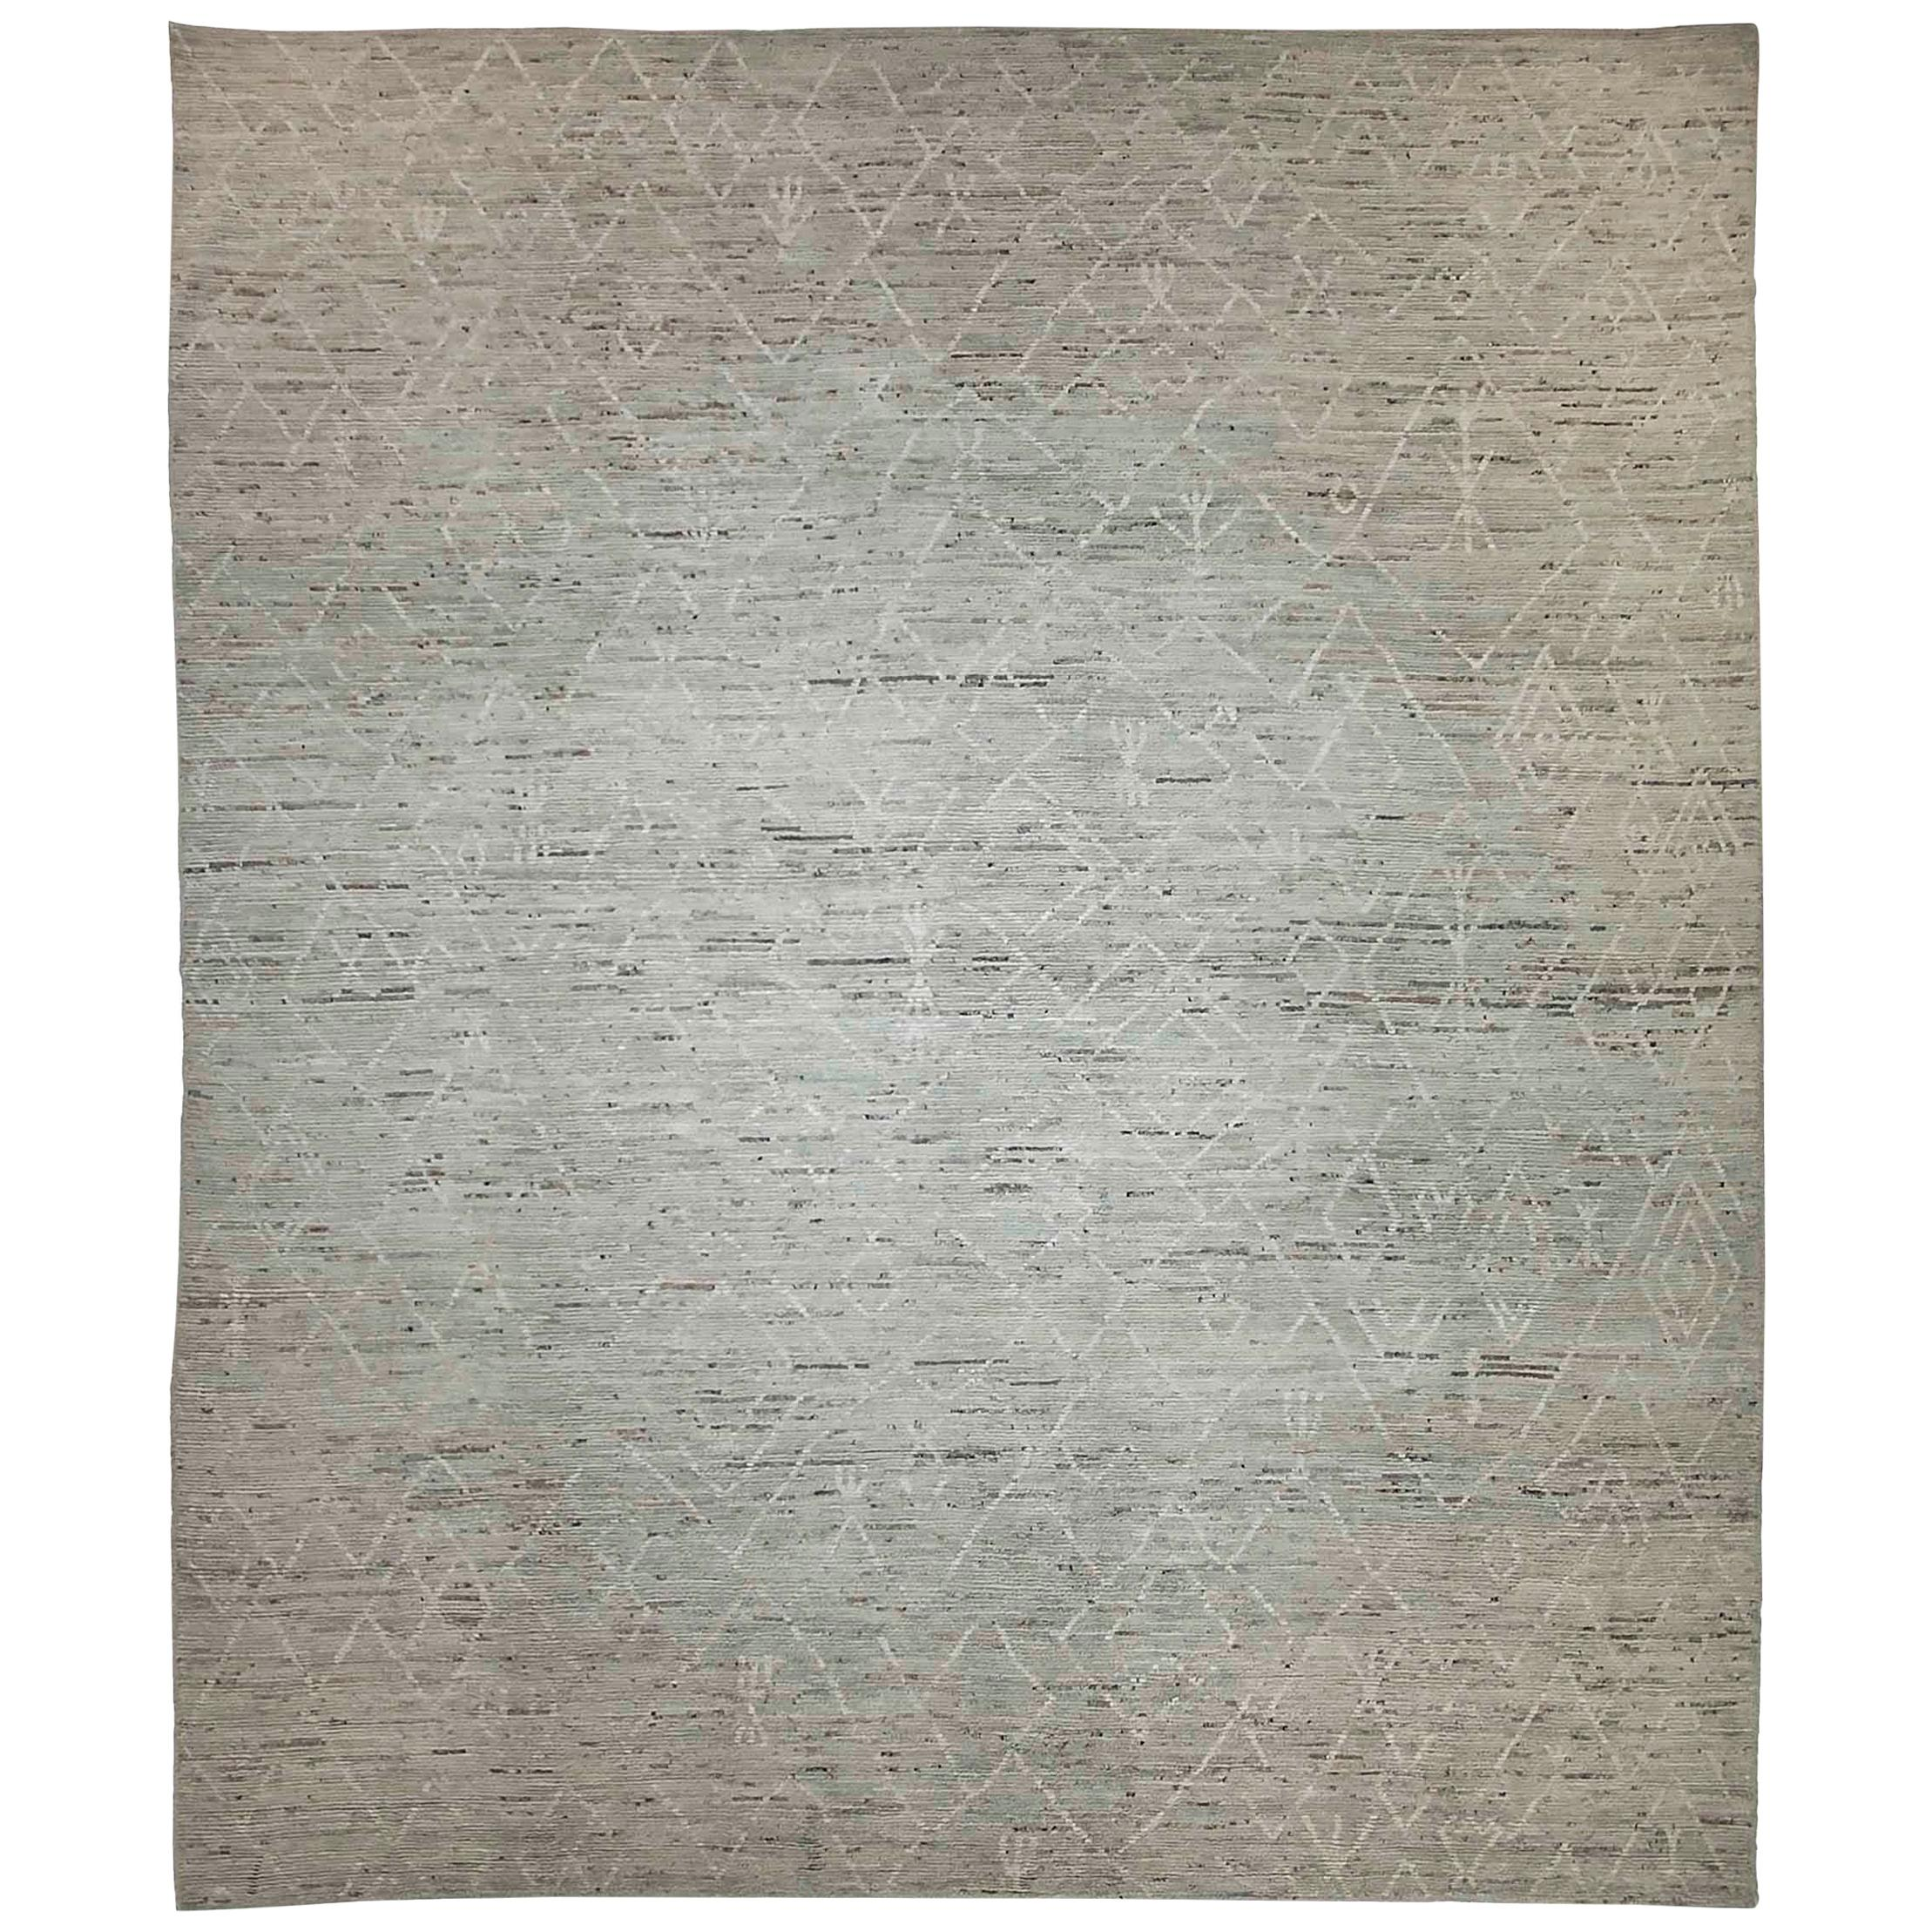 Afghan Moroccan Style Rug with White Tribal Details on Mixed Gray & Ivory Field